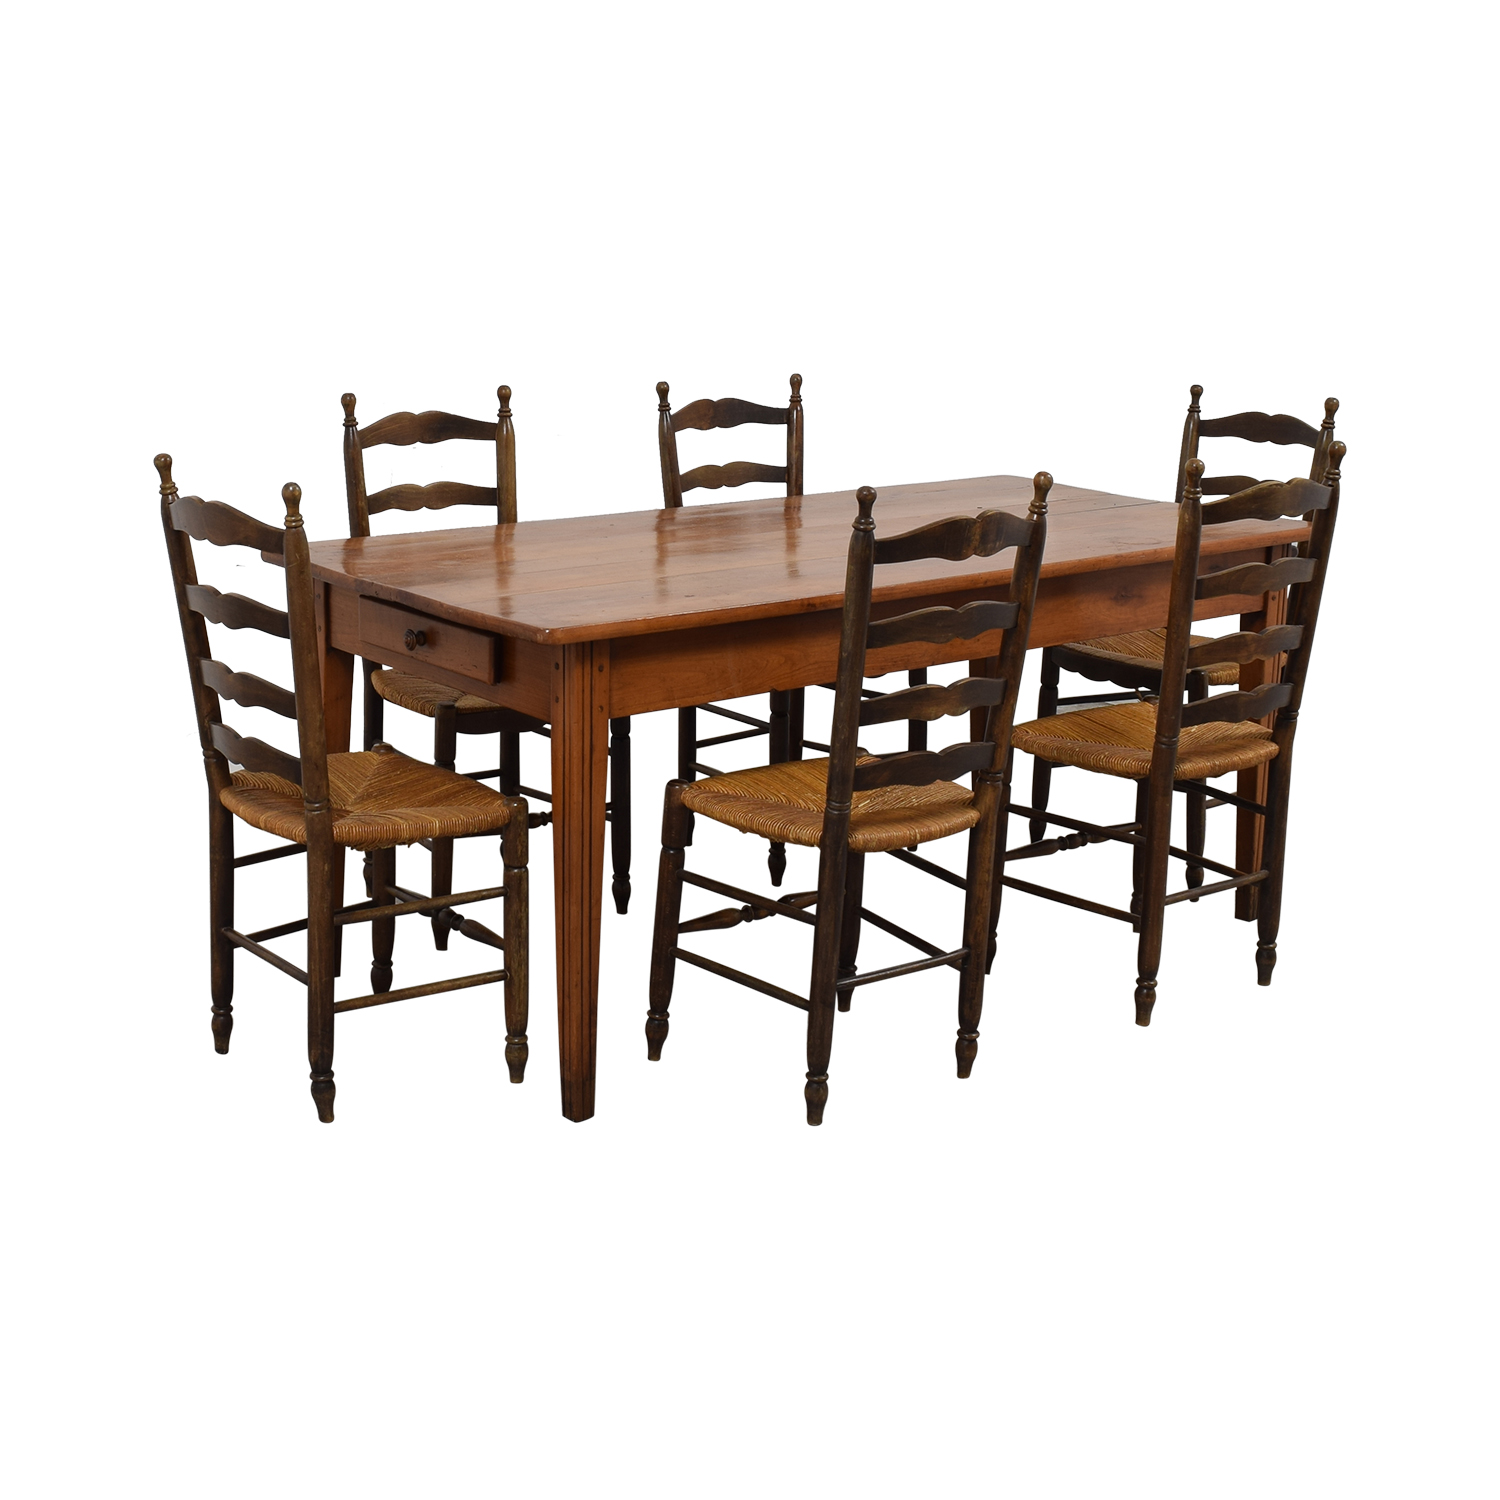 Wood Dining Set with Pullout Extension dimensions